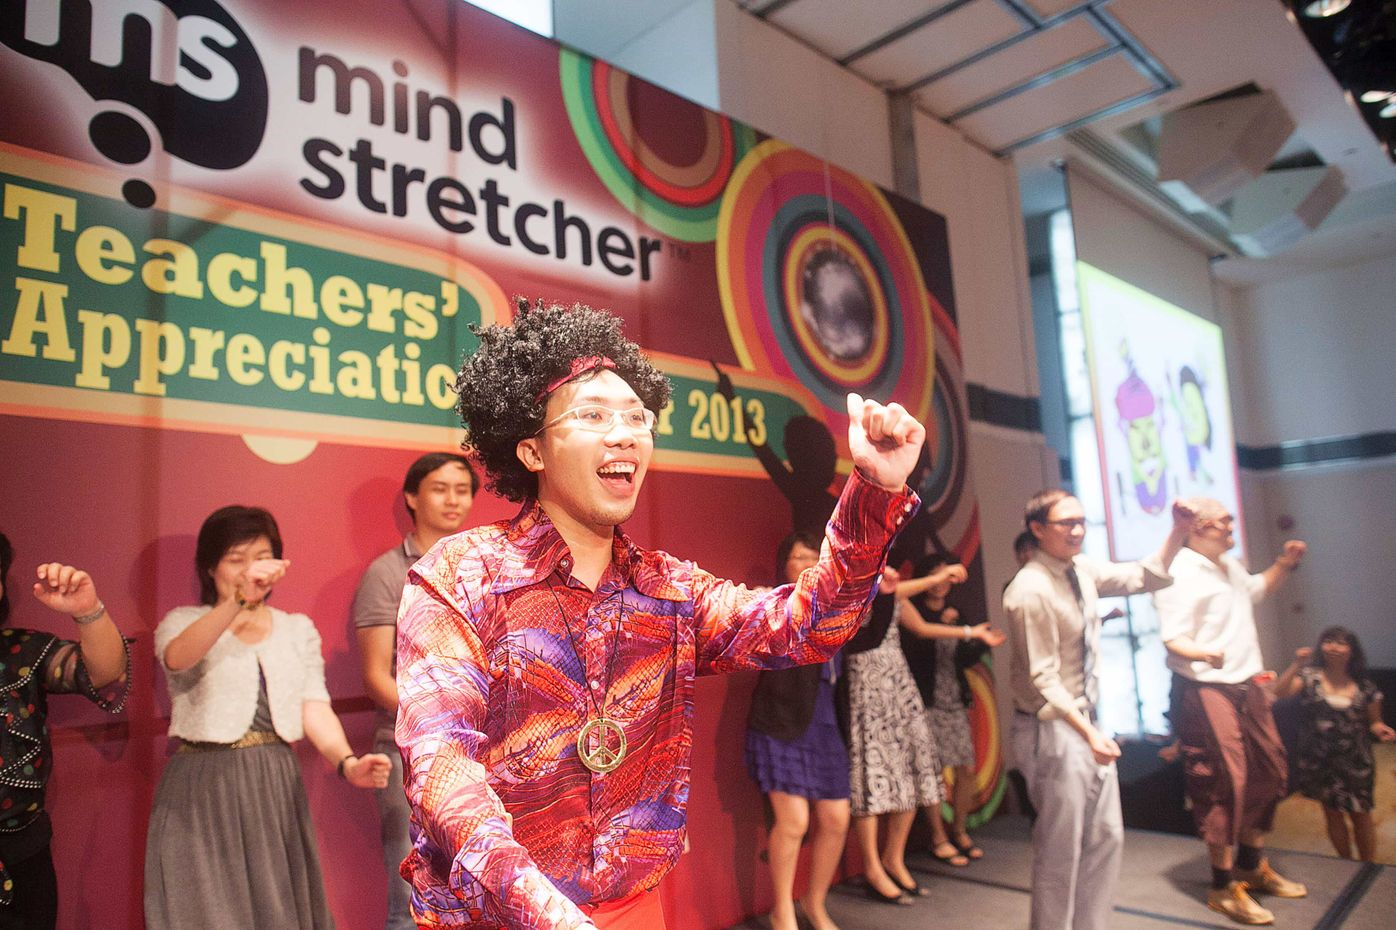 18 Mind Stretcher -dinneranddance-dnd-emcee-host-mc